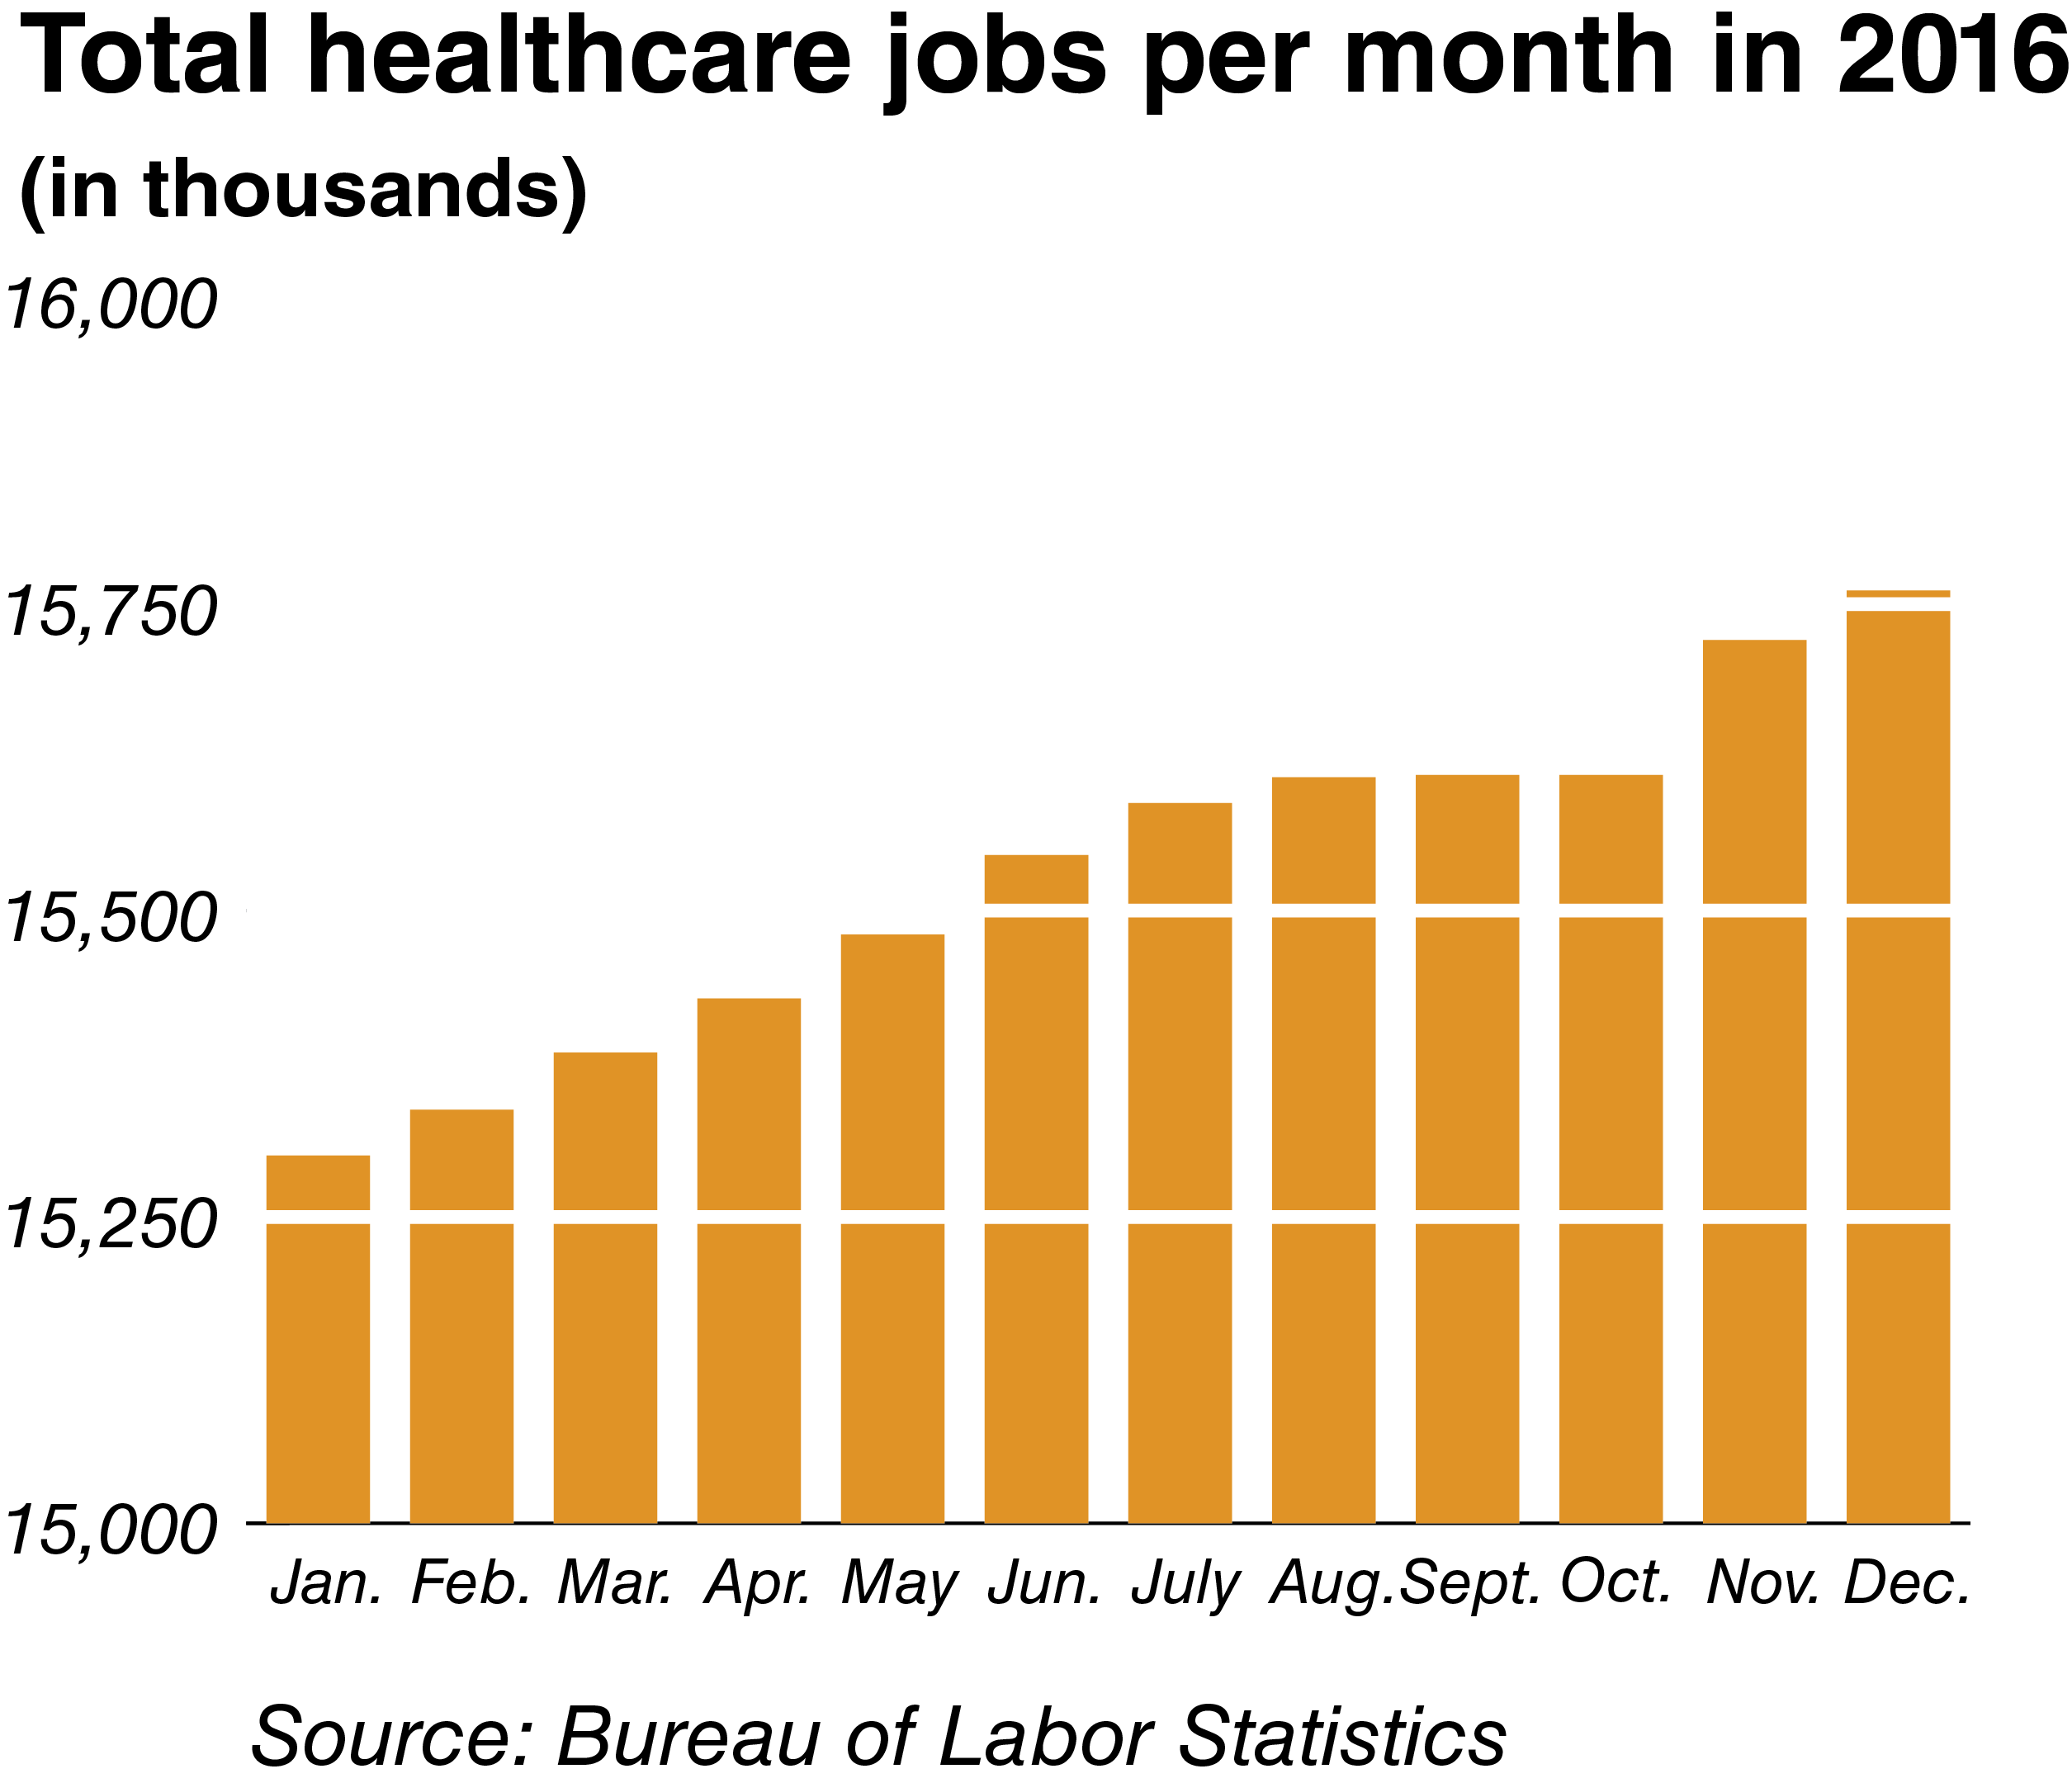 Total healthcare jobs per month in 2016